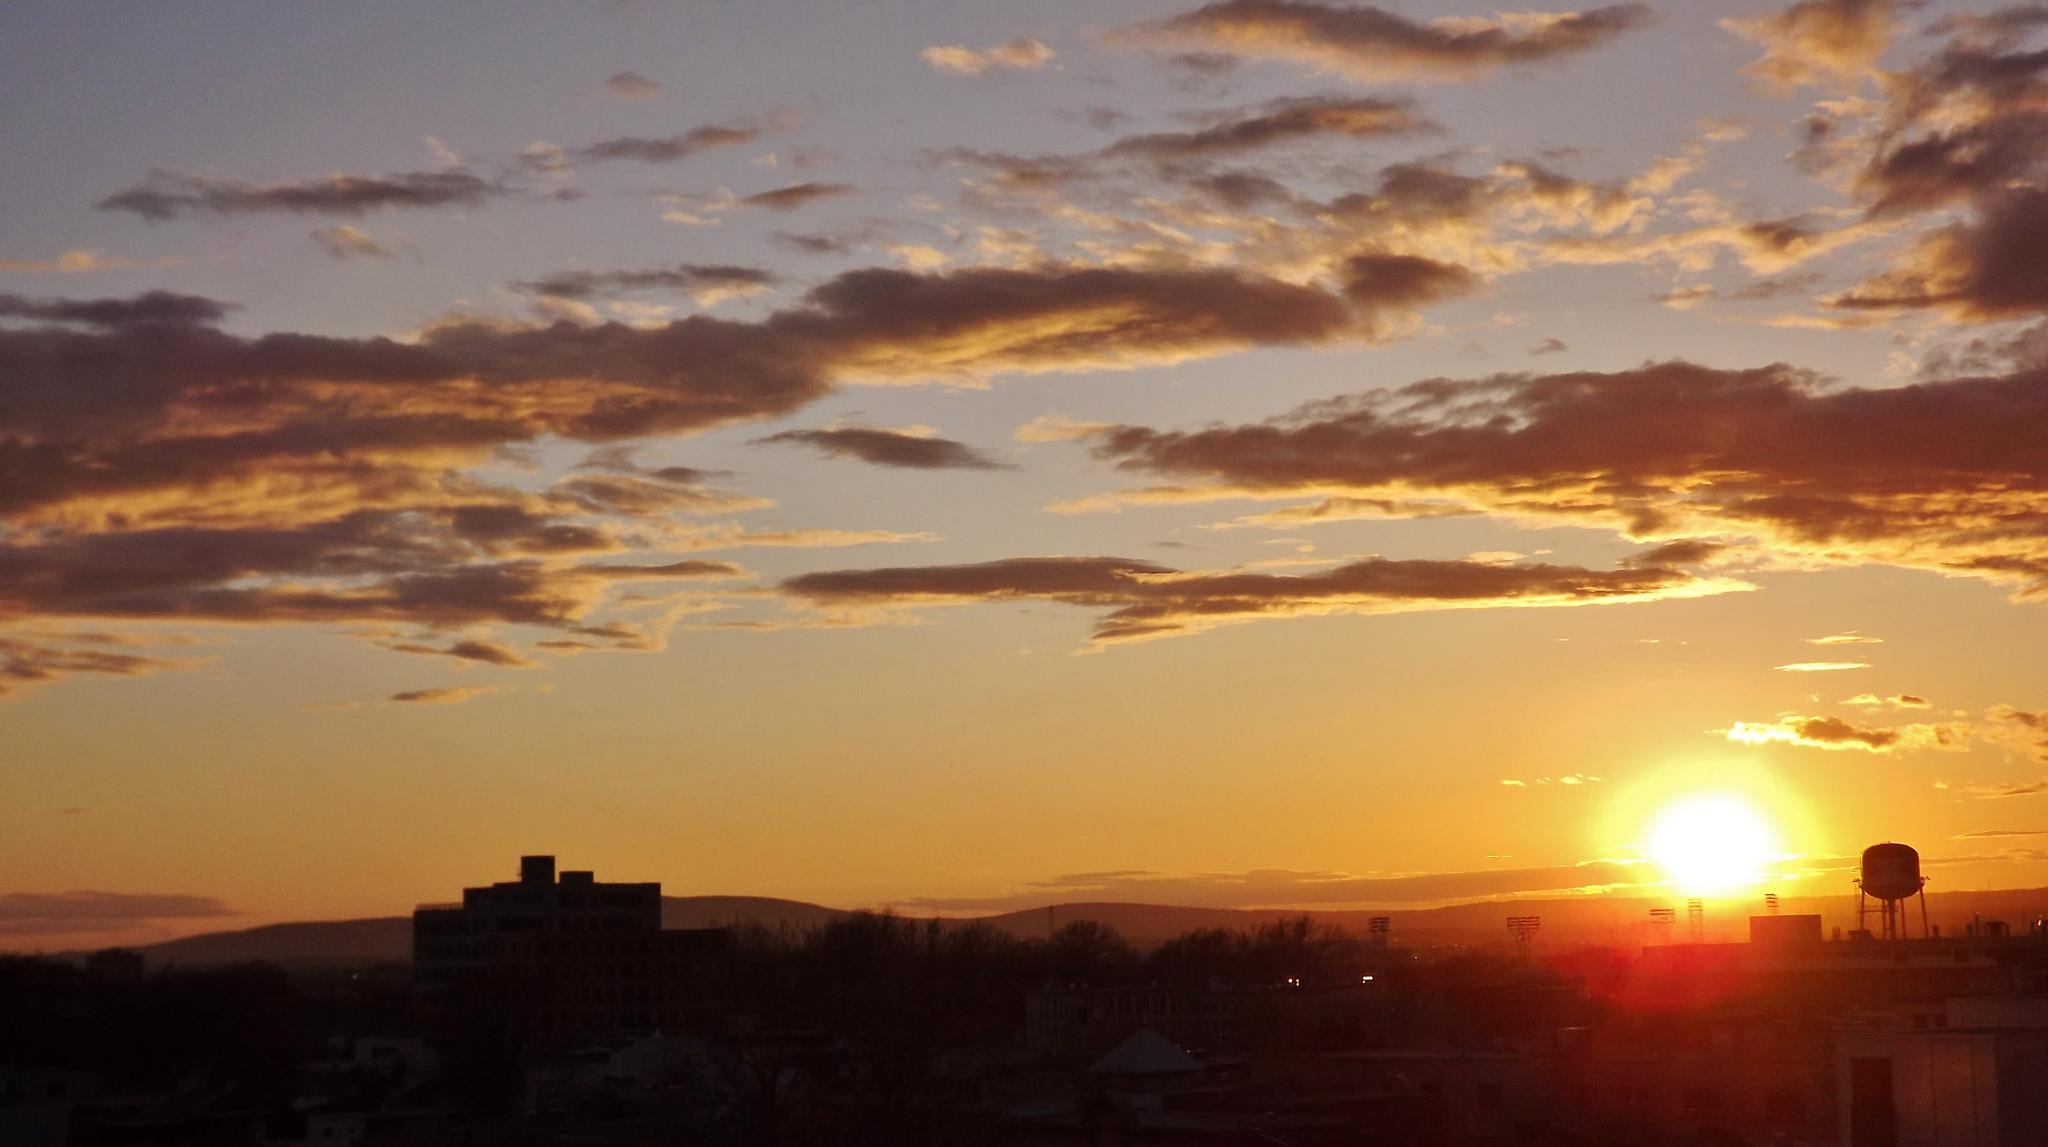 Sunset on the city by real.michaud.5036